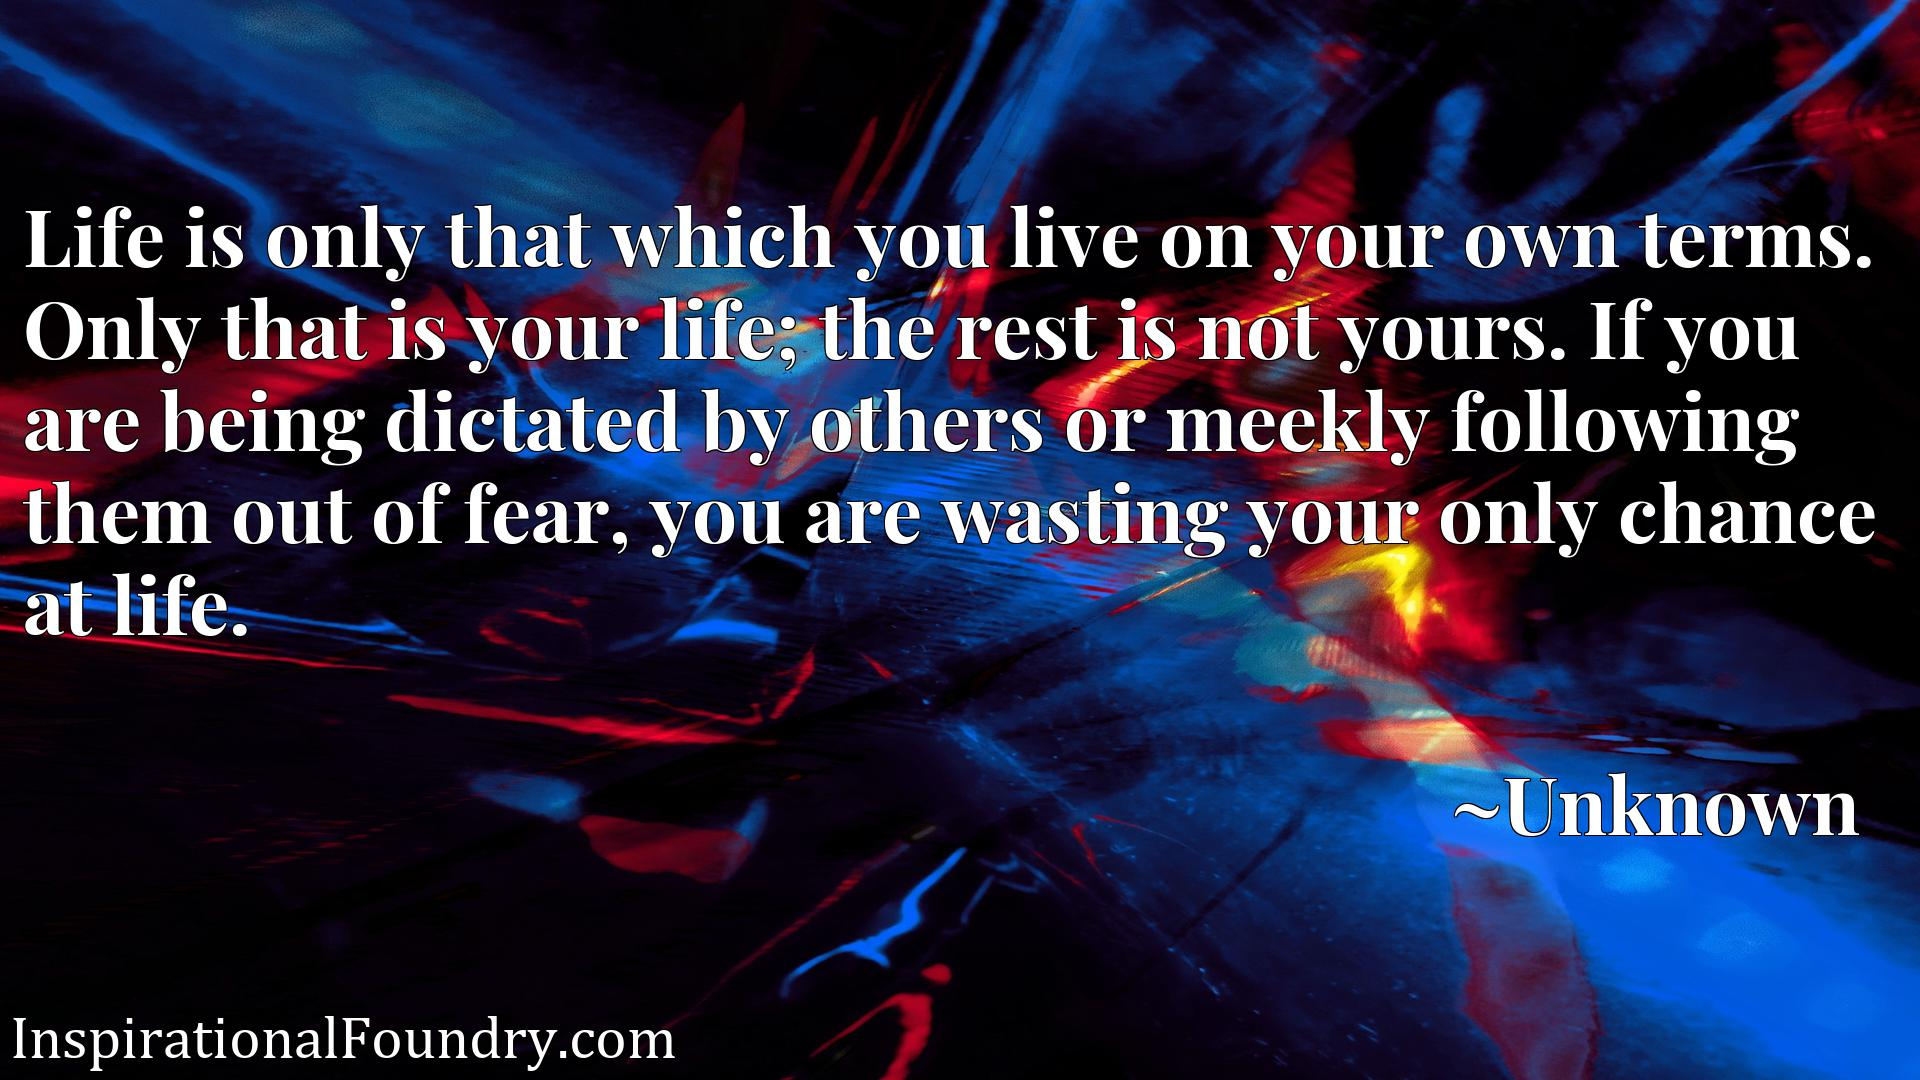 Life is only that which you live on your own terms. Only that is your life; the rest is not yours. If you are being dictated by others or meekly following them out of fear, you are wasting your only chance at life.